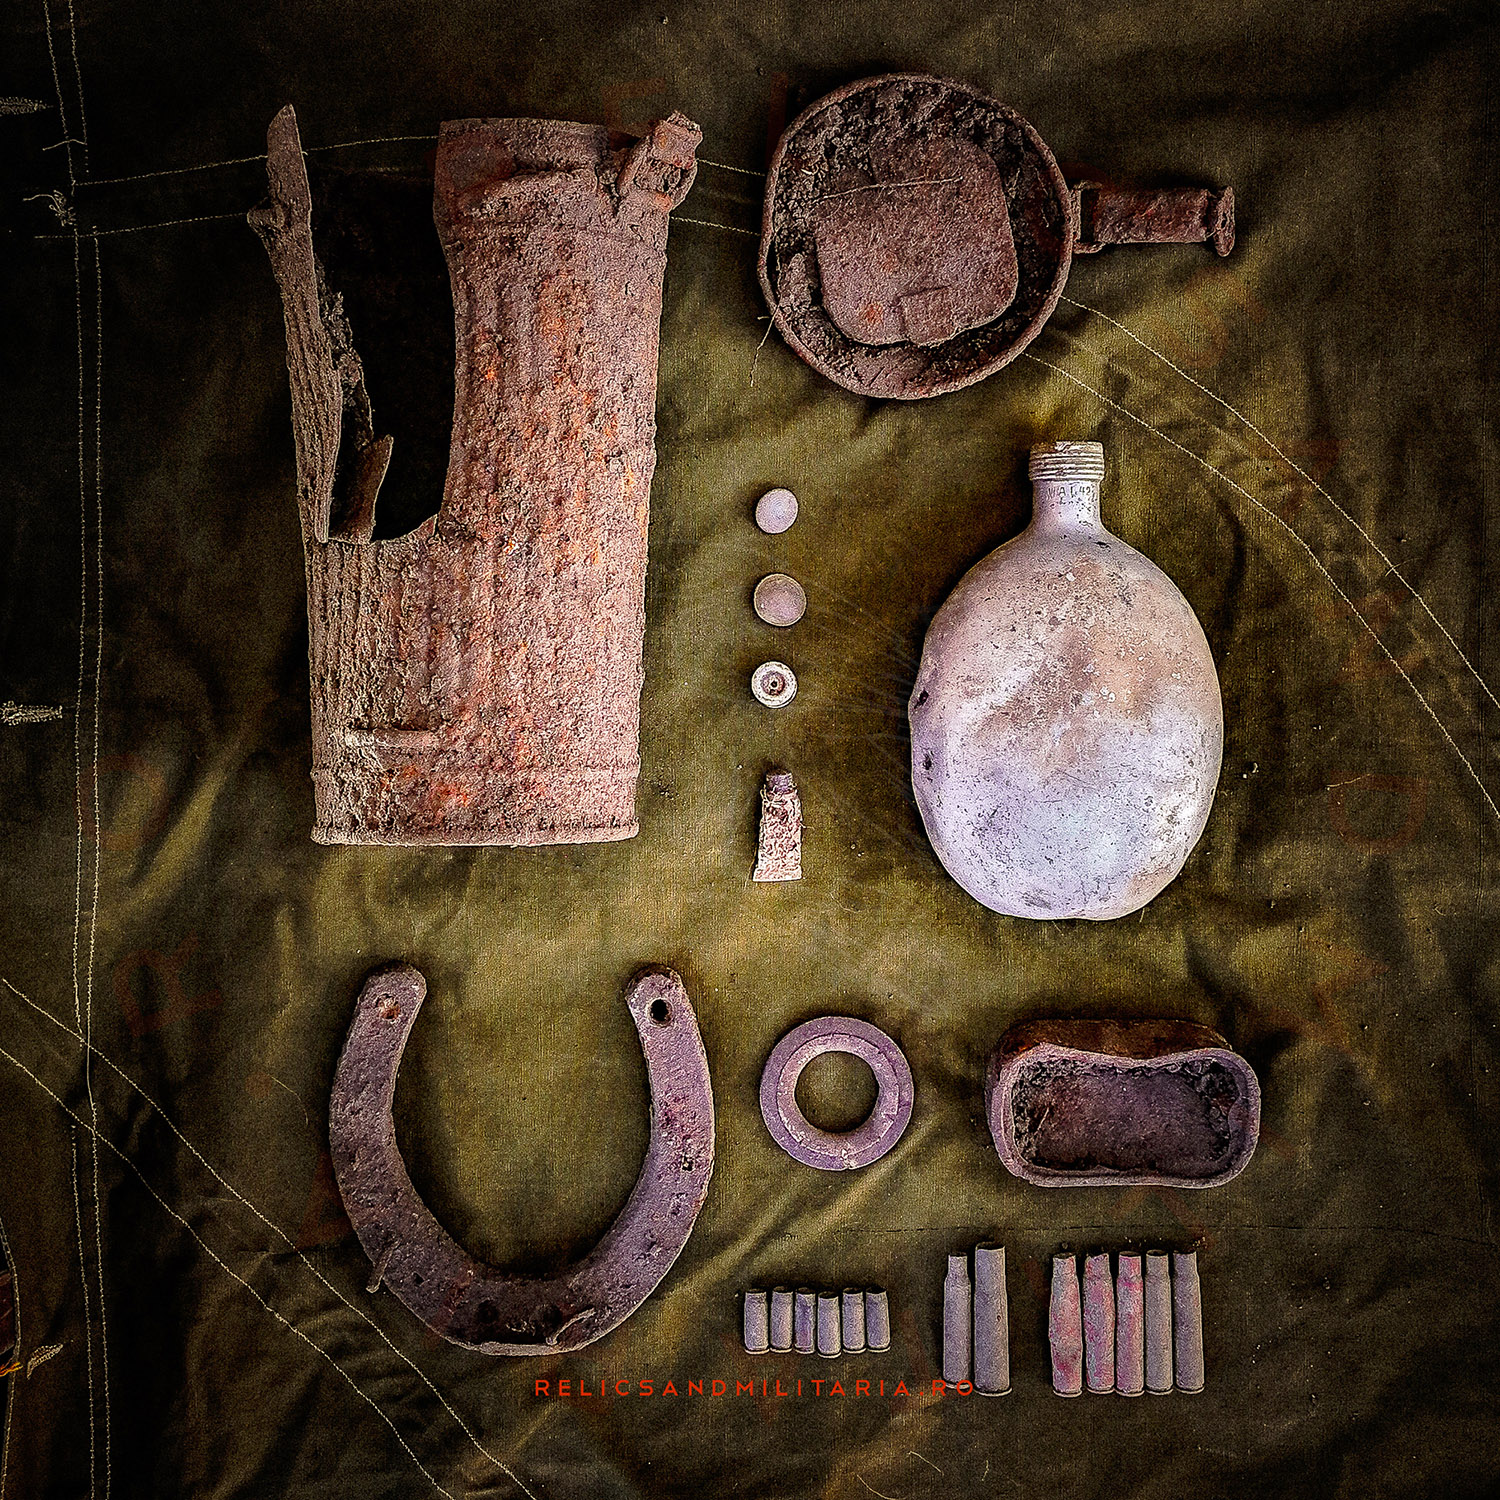 Wehrmacht relics found Metal detecting in Romania